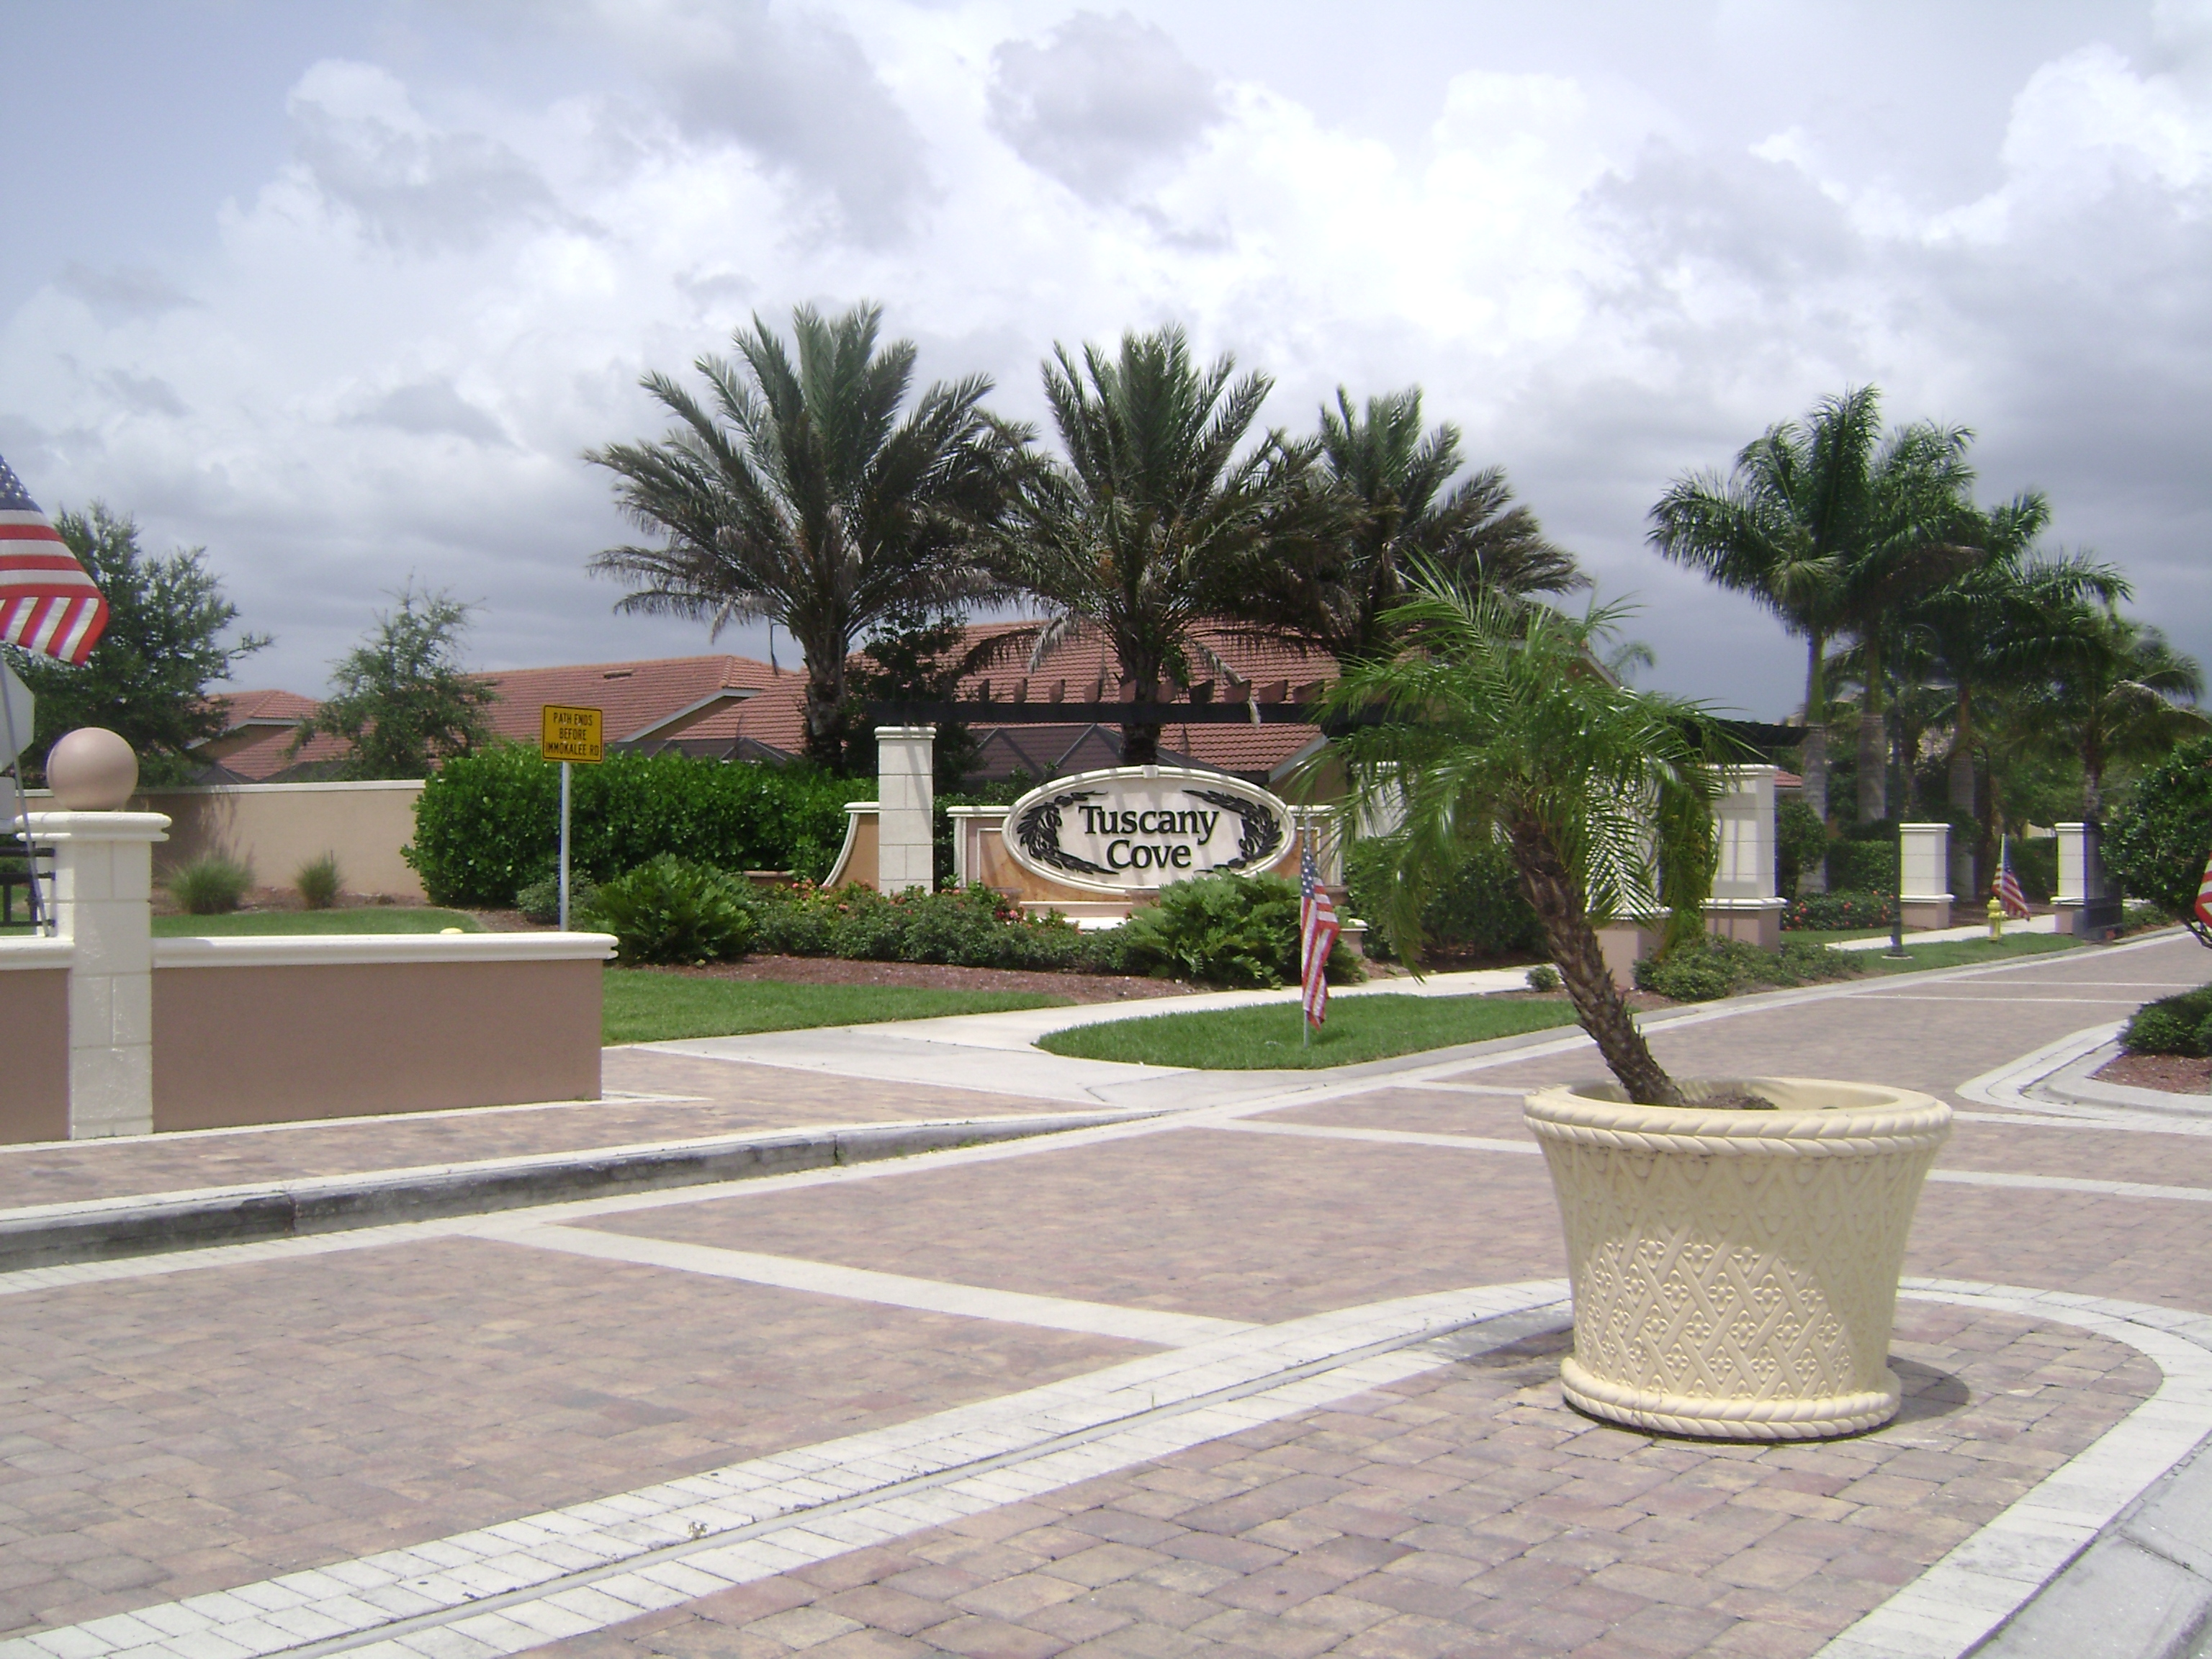 Entrance to Tuscany Cove in Naples, Florida.